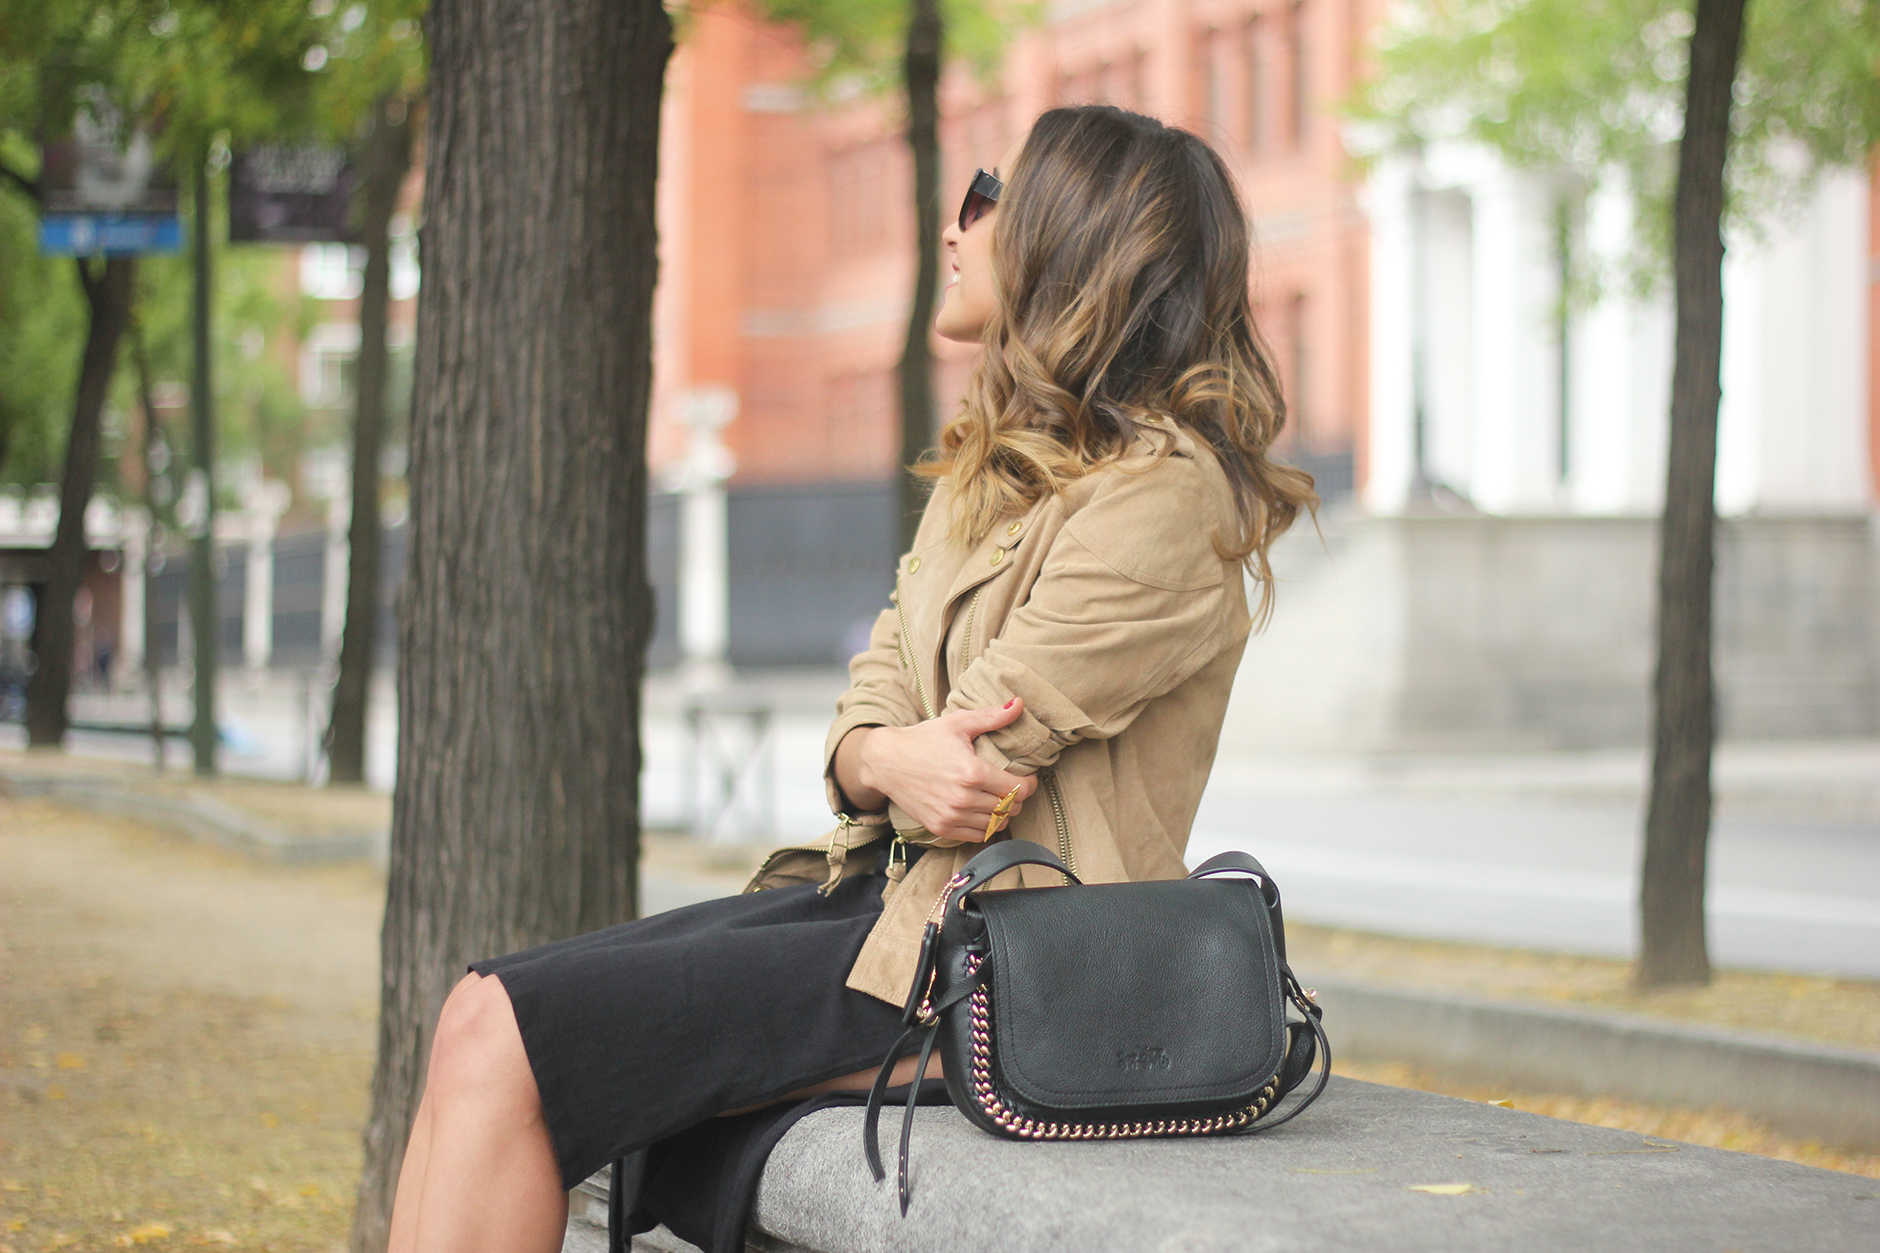 Suede Jacket Black Dress Coach Bag style fall outfit autumn23